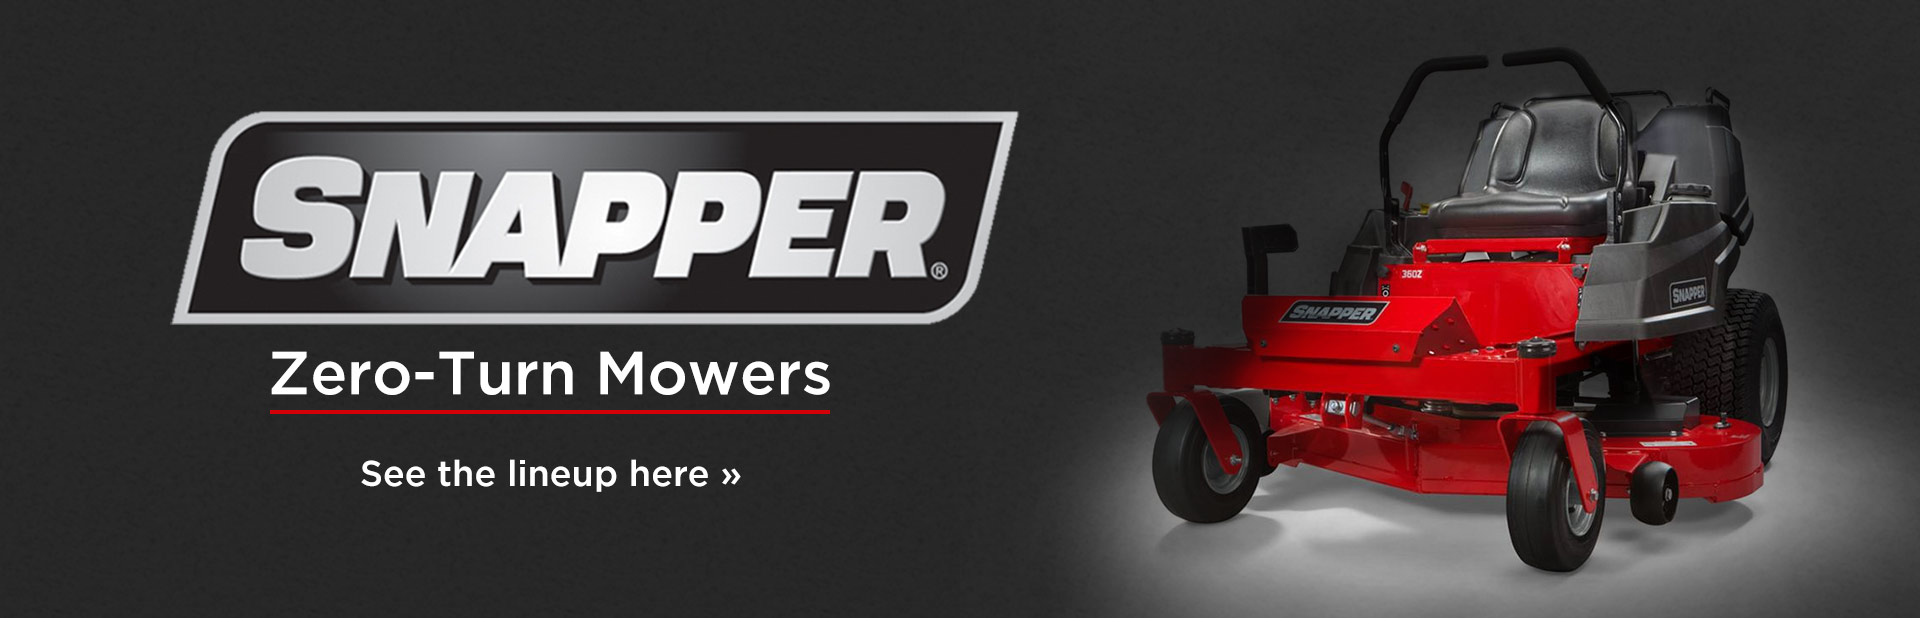 Snapper Zero-Turn Mowers: Click here to view the models.